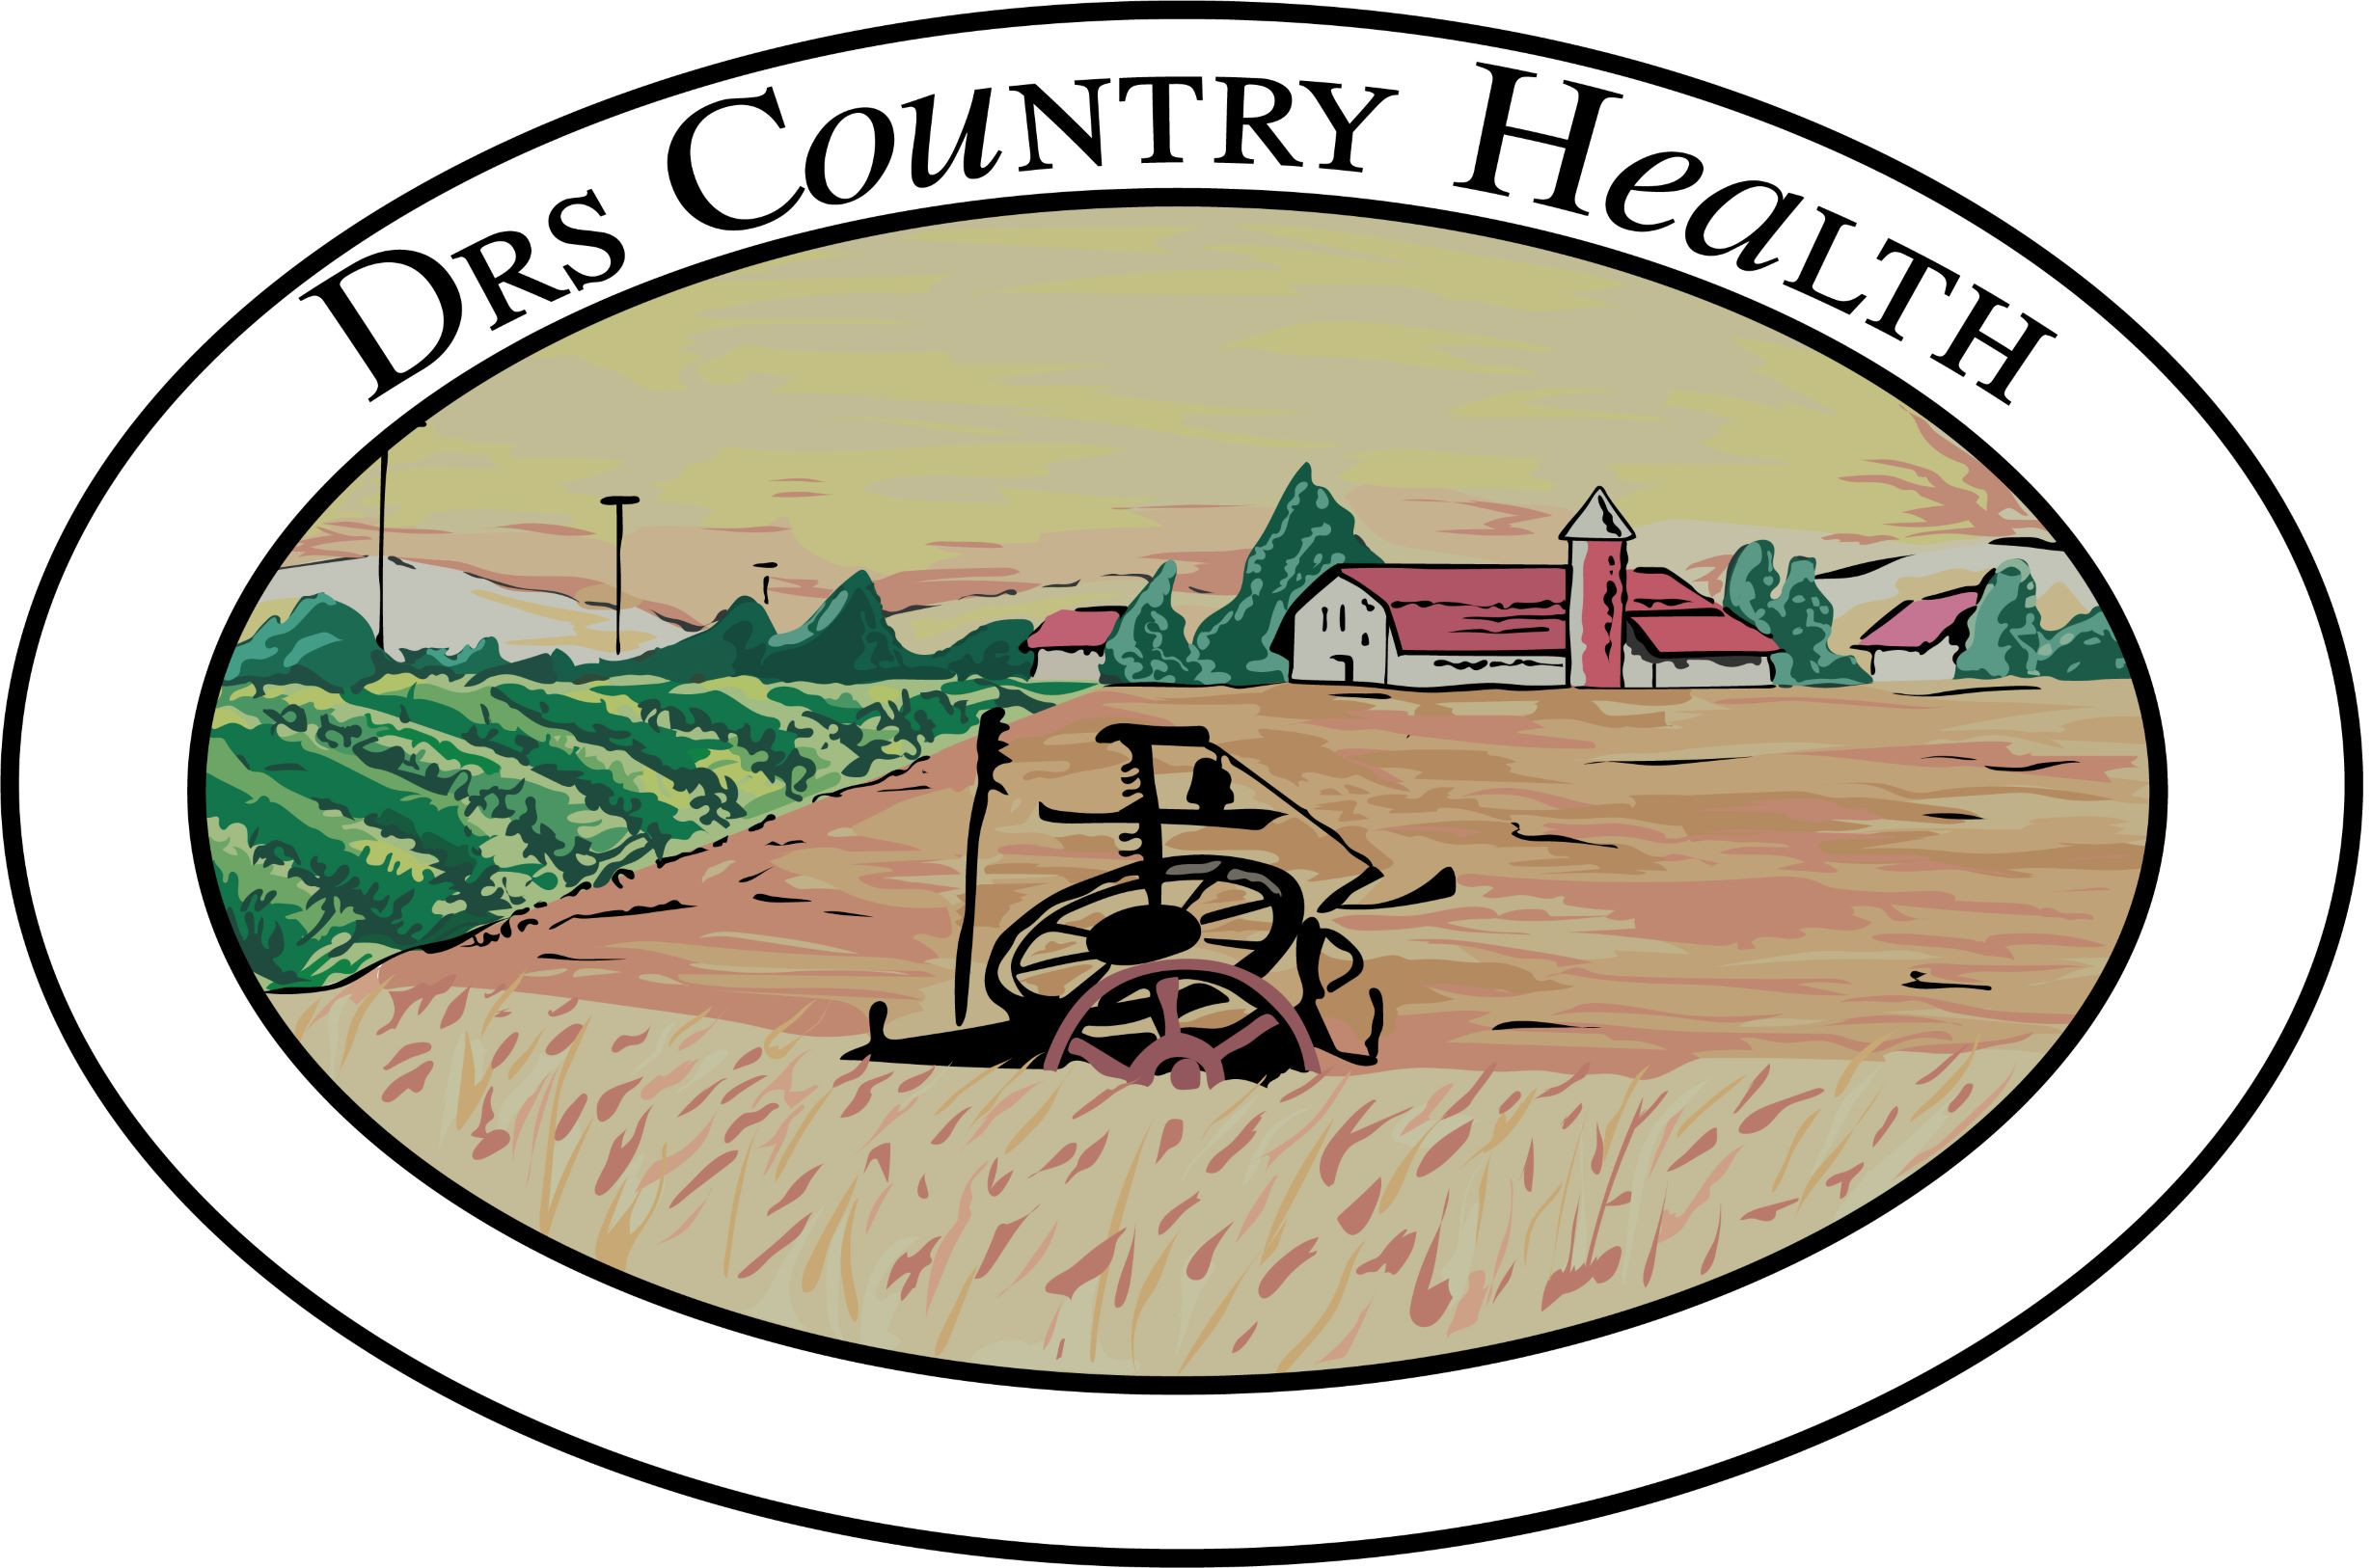 DRS Country Health